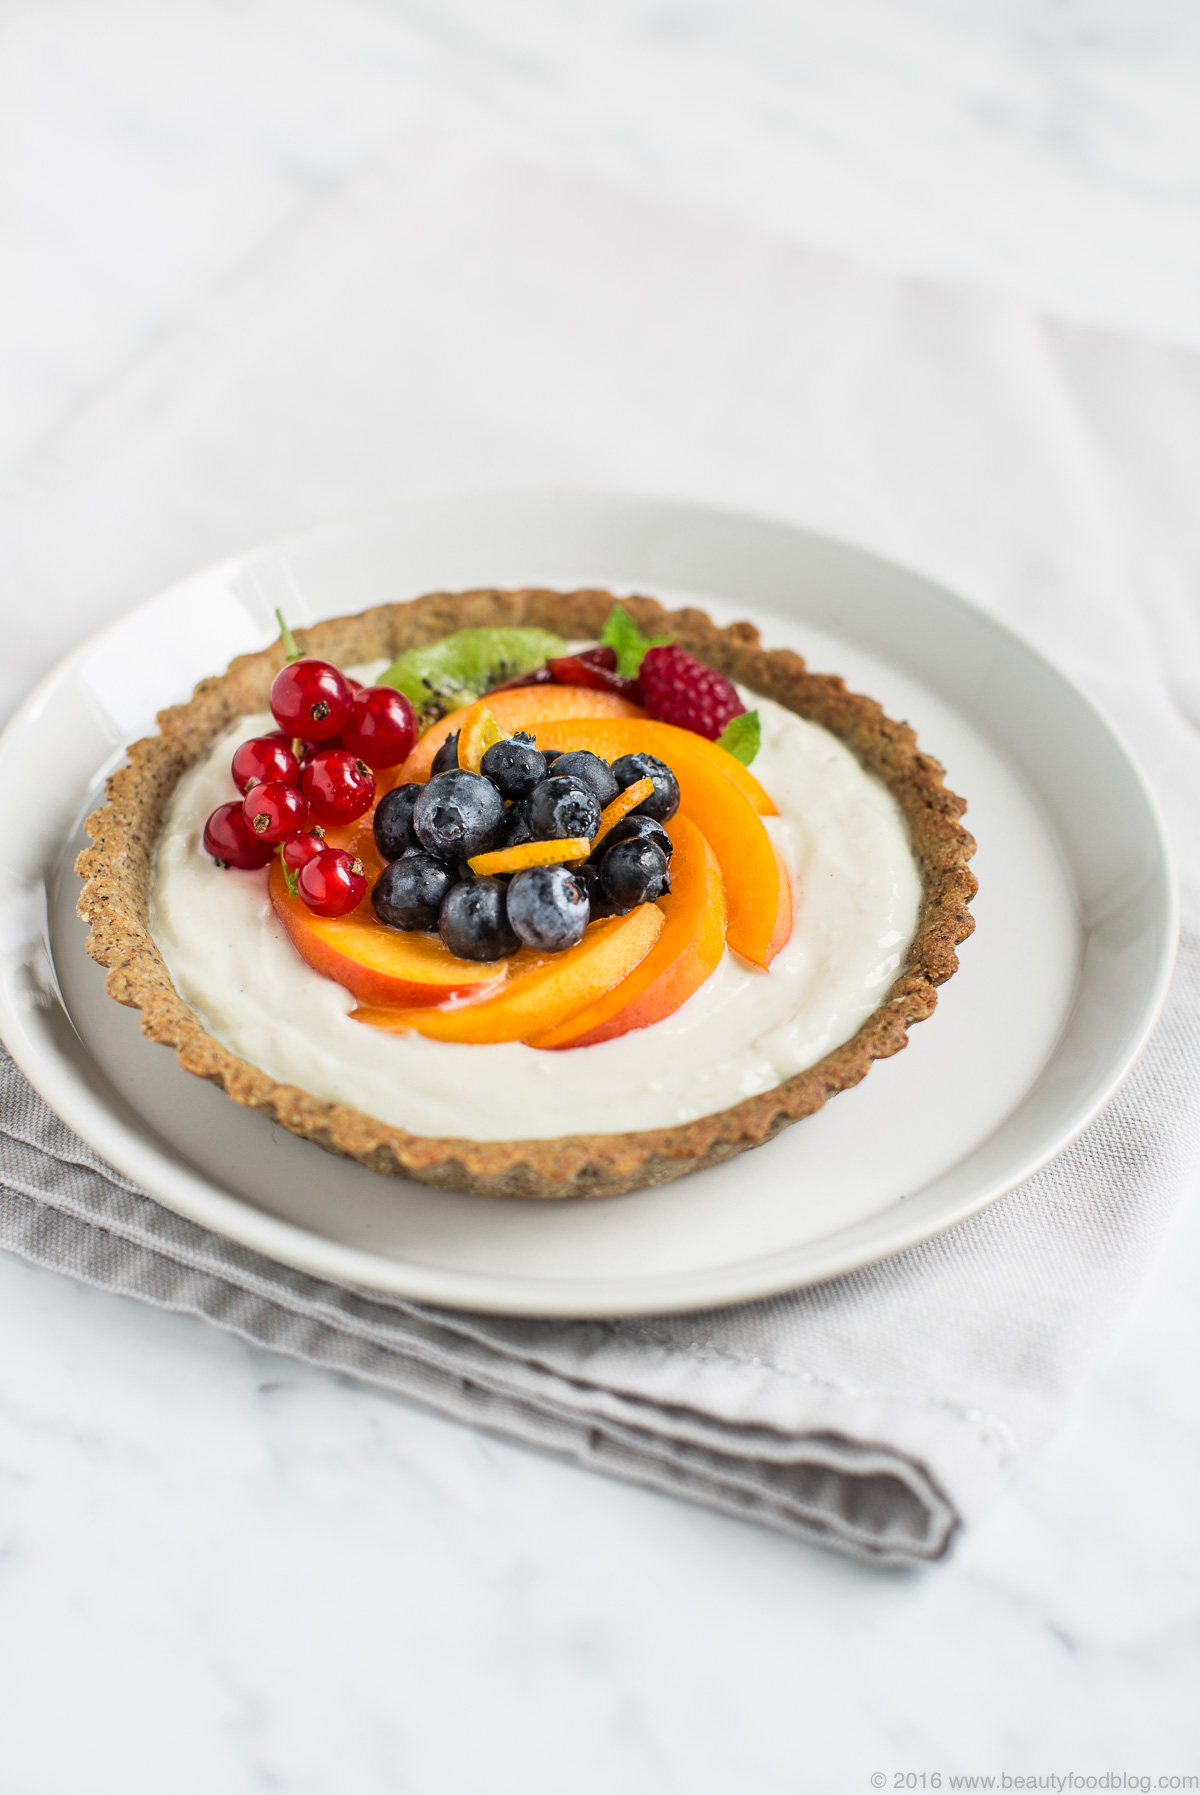 vegan buckwheat yogurt tart with fresh fruit #glutenfree - crostata al grano saraceno vegan con yogurt e frutta fresca